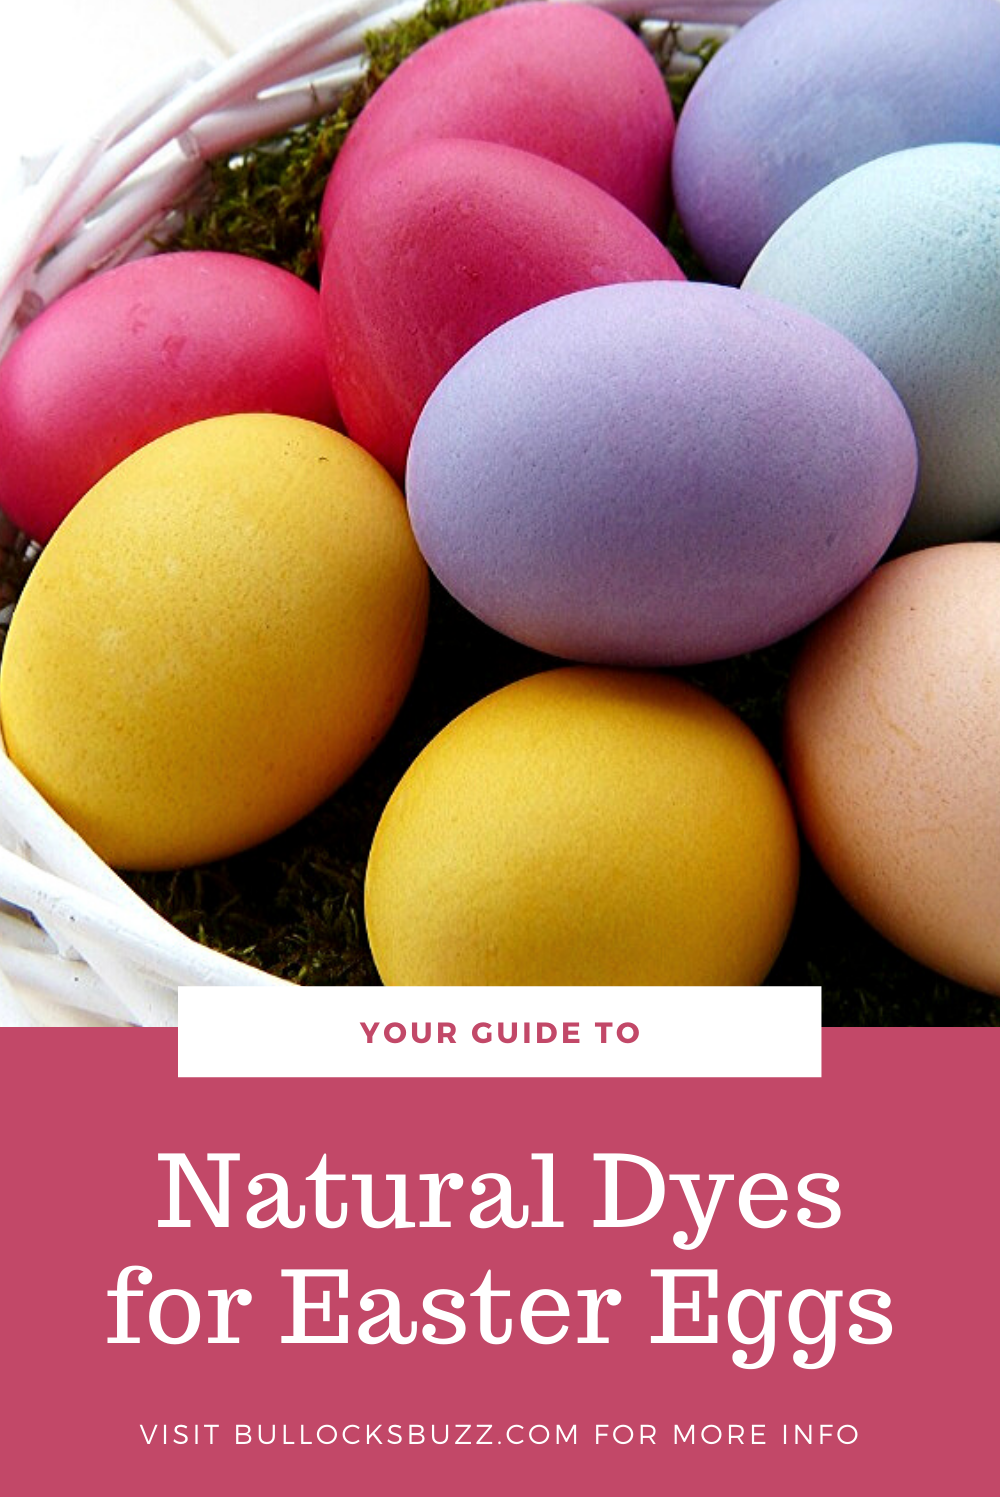 Check out these natural dyes for Easter eggs and get ready to make gorgeous, fun-colored eggs that are perfect for your Easter Egg Hunt!